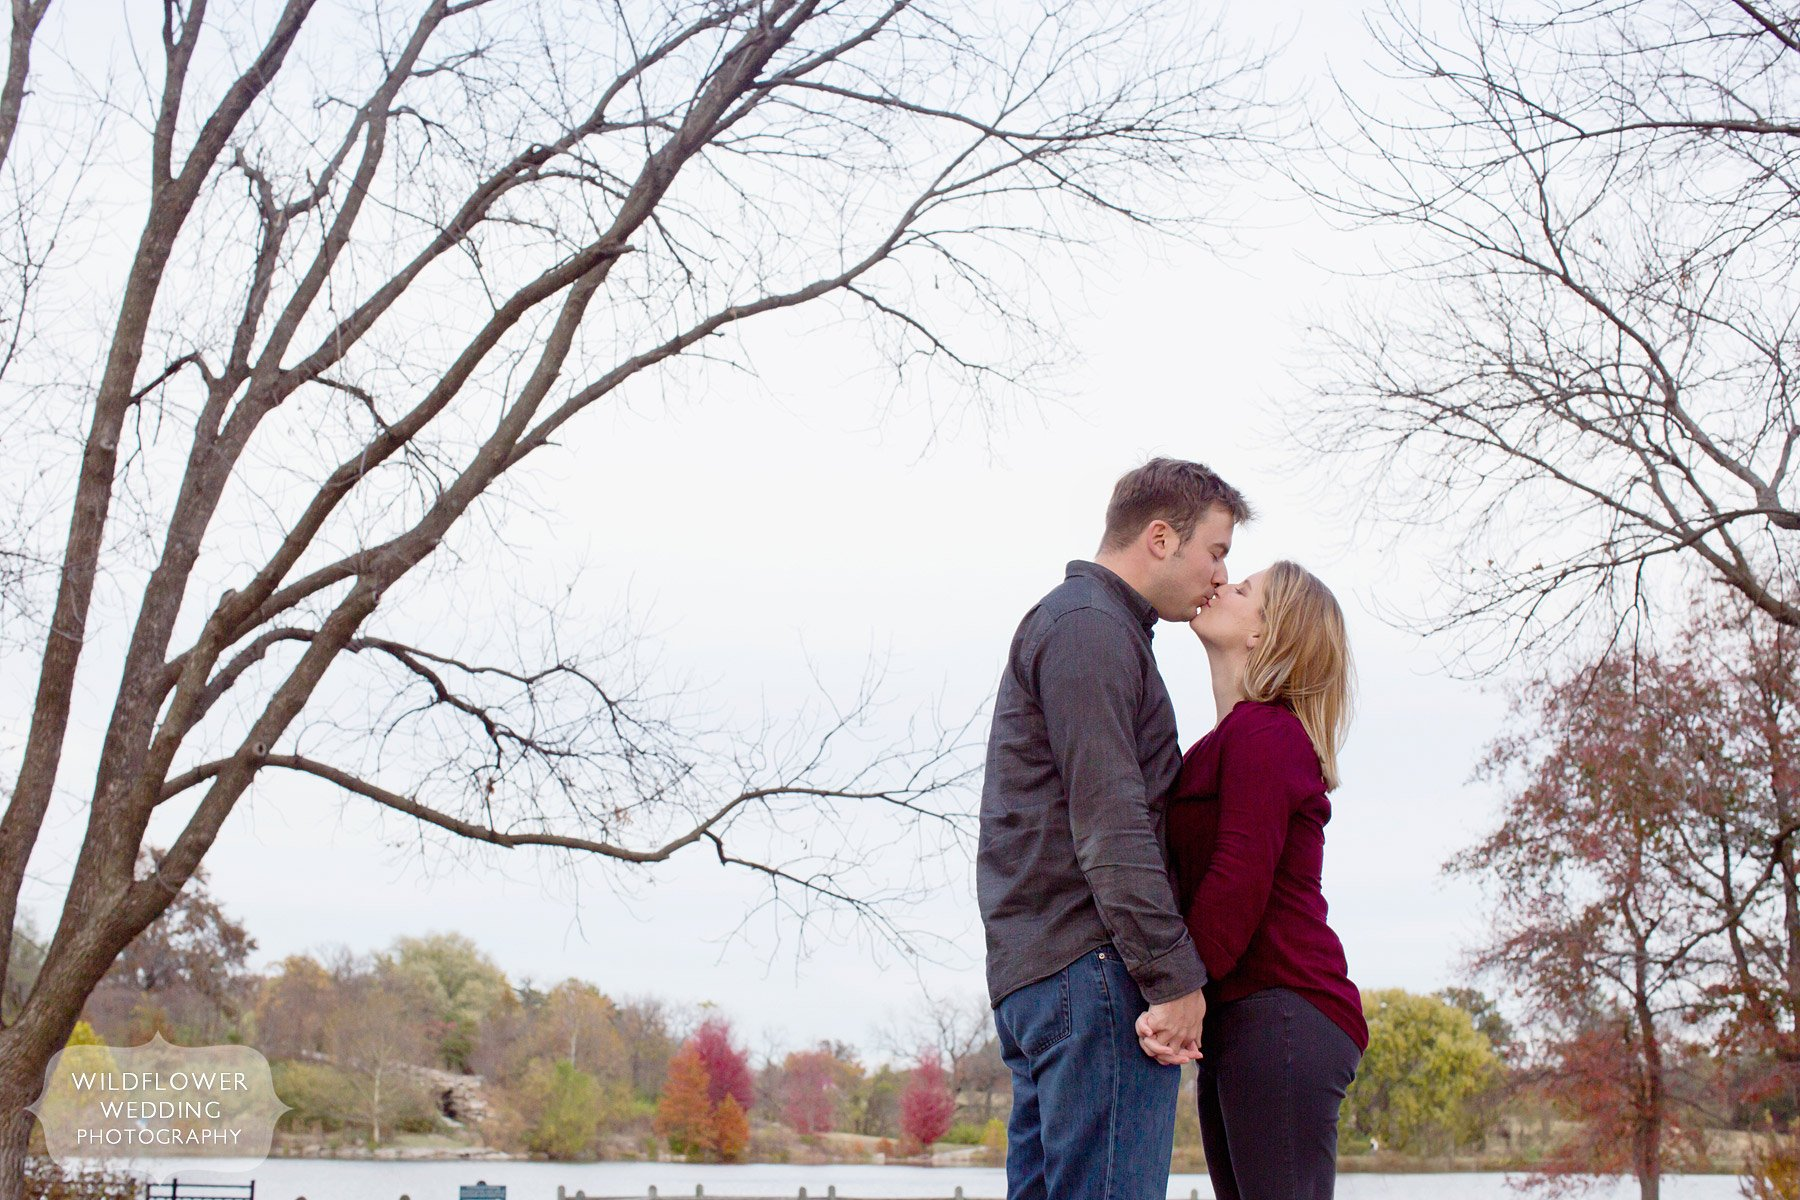 stephens-lake-engagement-kiss-photo-mo